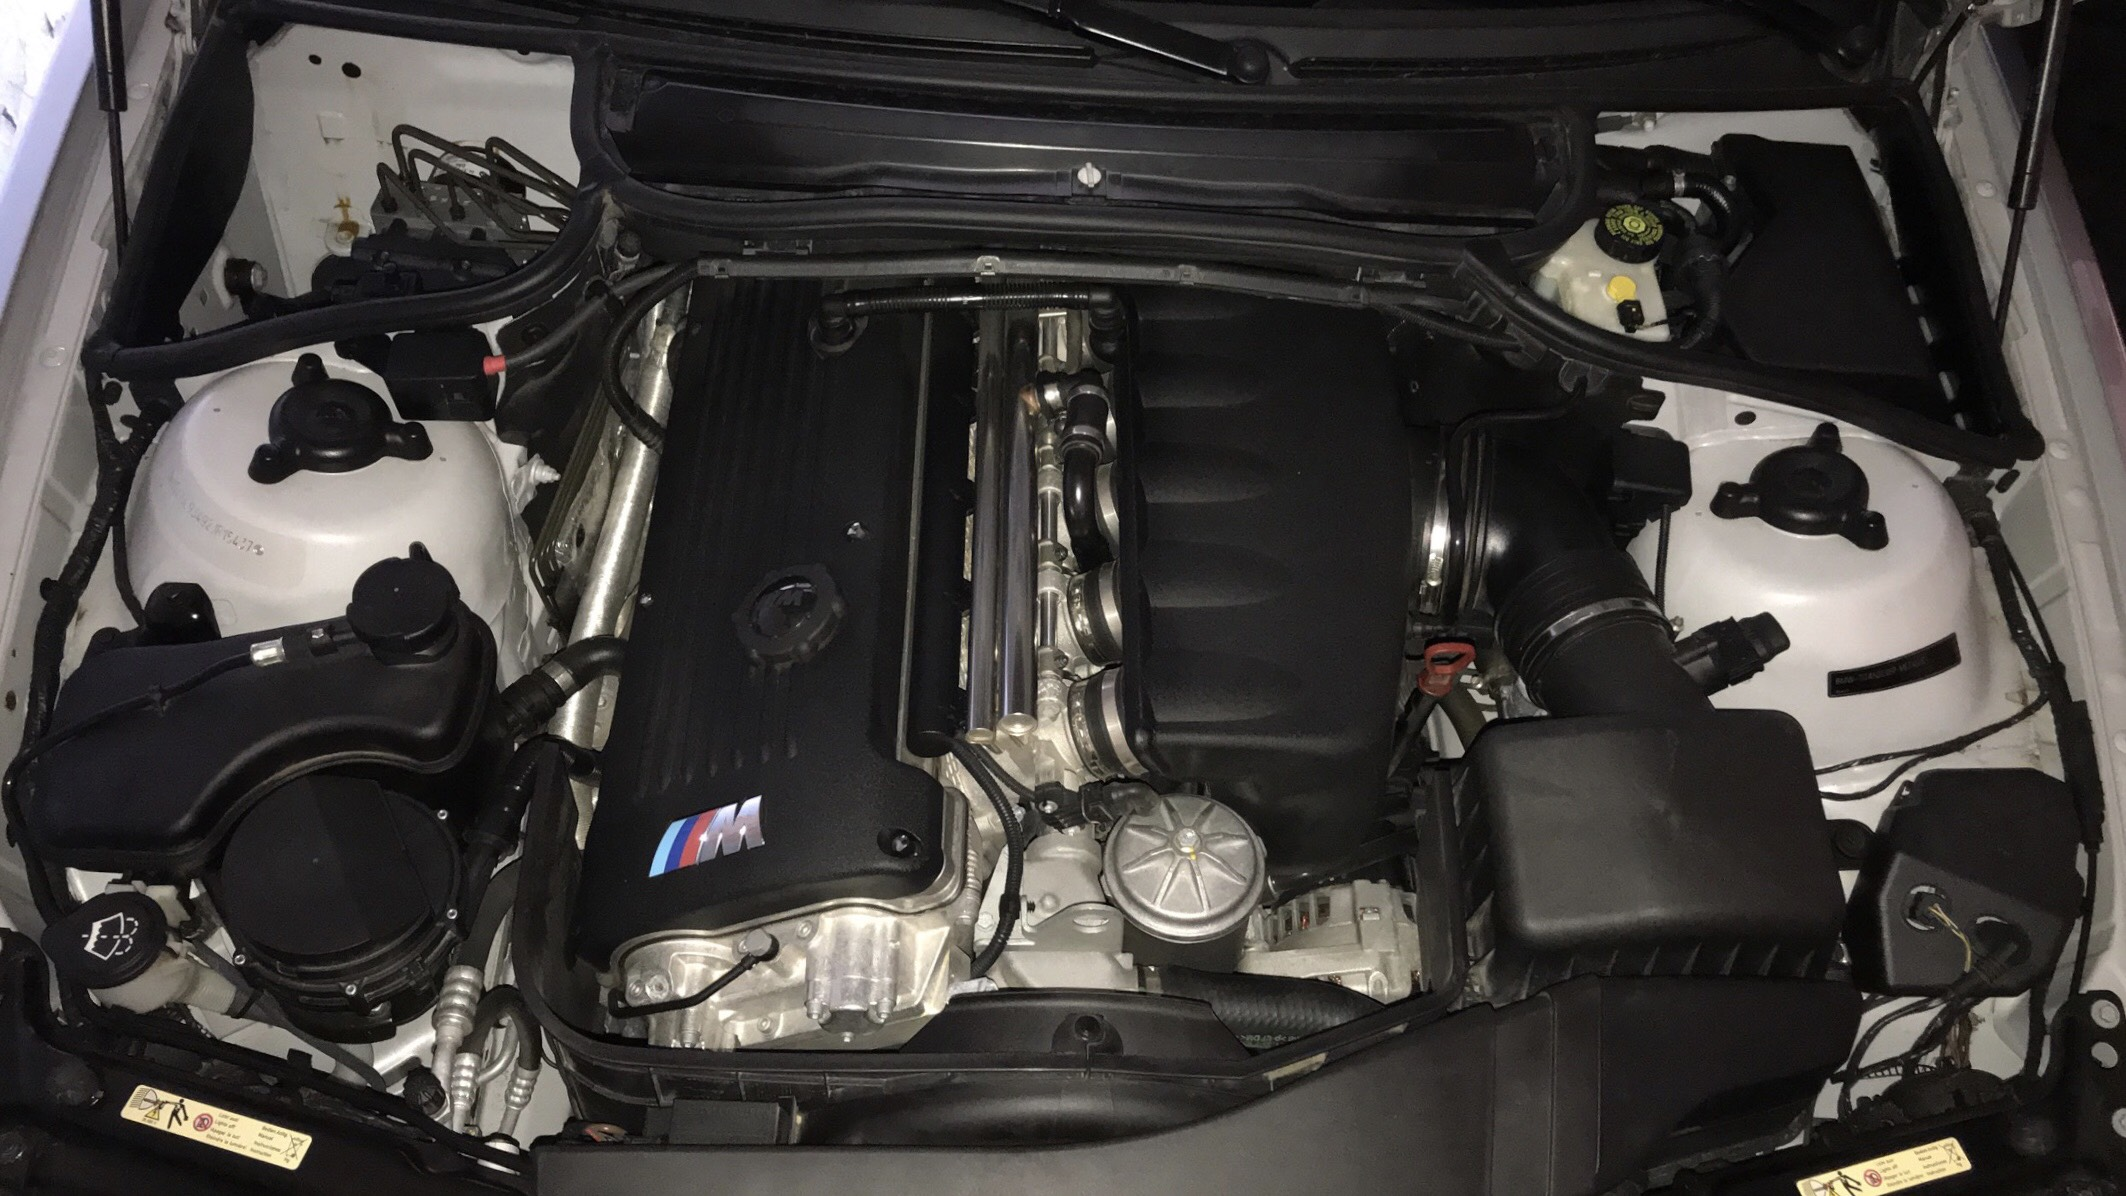 In Love With The Engine Bay Of My E46 M3